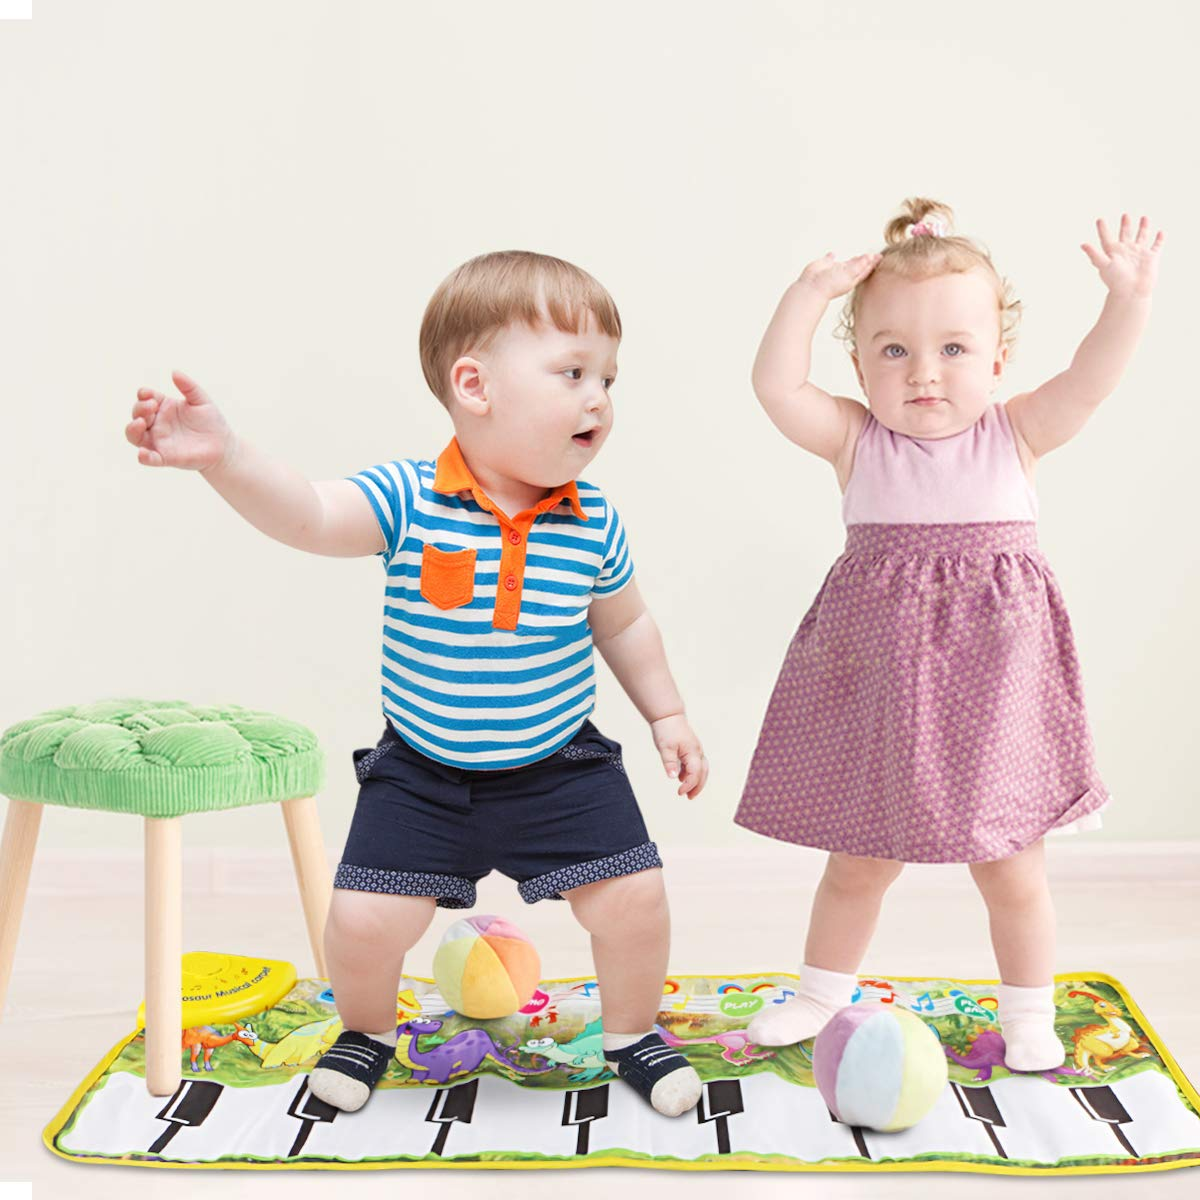 Piano Mat, Tencoz Musical Piano Mat with 8 Dinosaurs Sounds Portable Electronic Educational Musical Blanket Dinosaur Toys Gifts for Kids Toddler Girls Boys by Tencoz (Image #6)